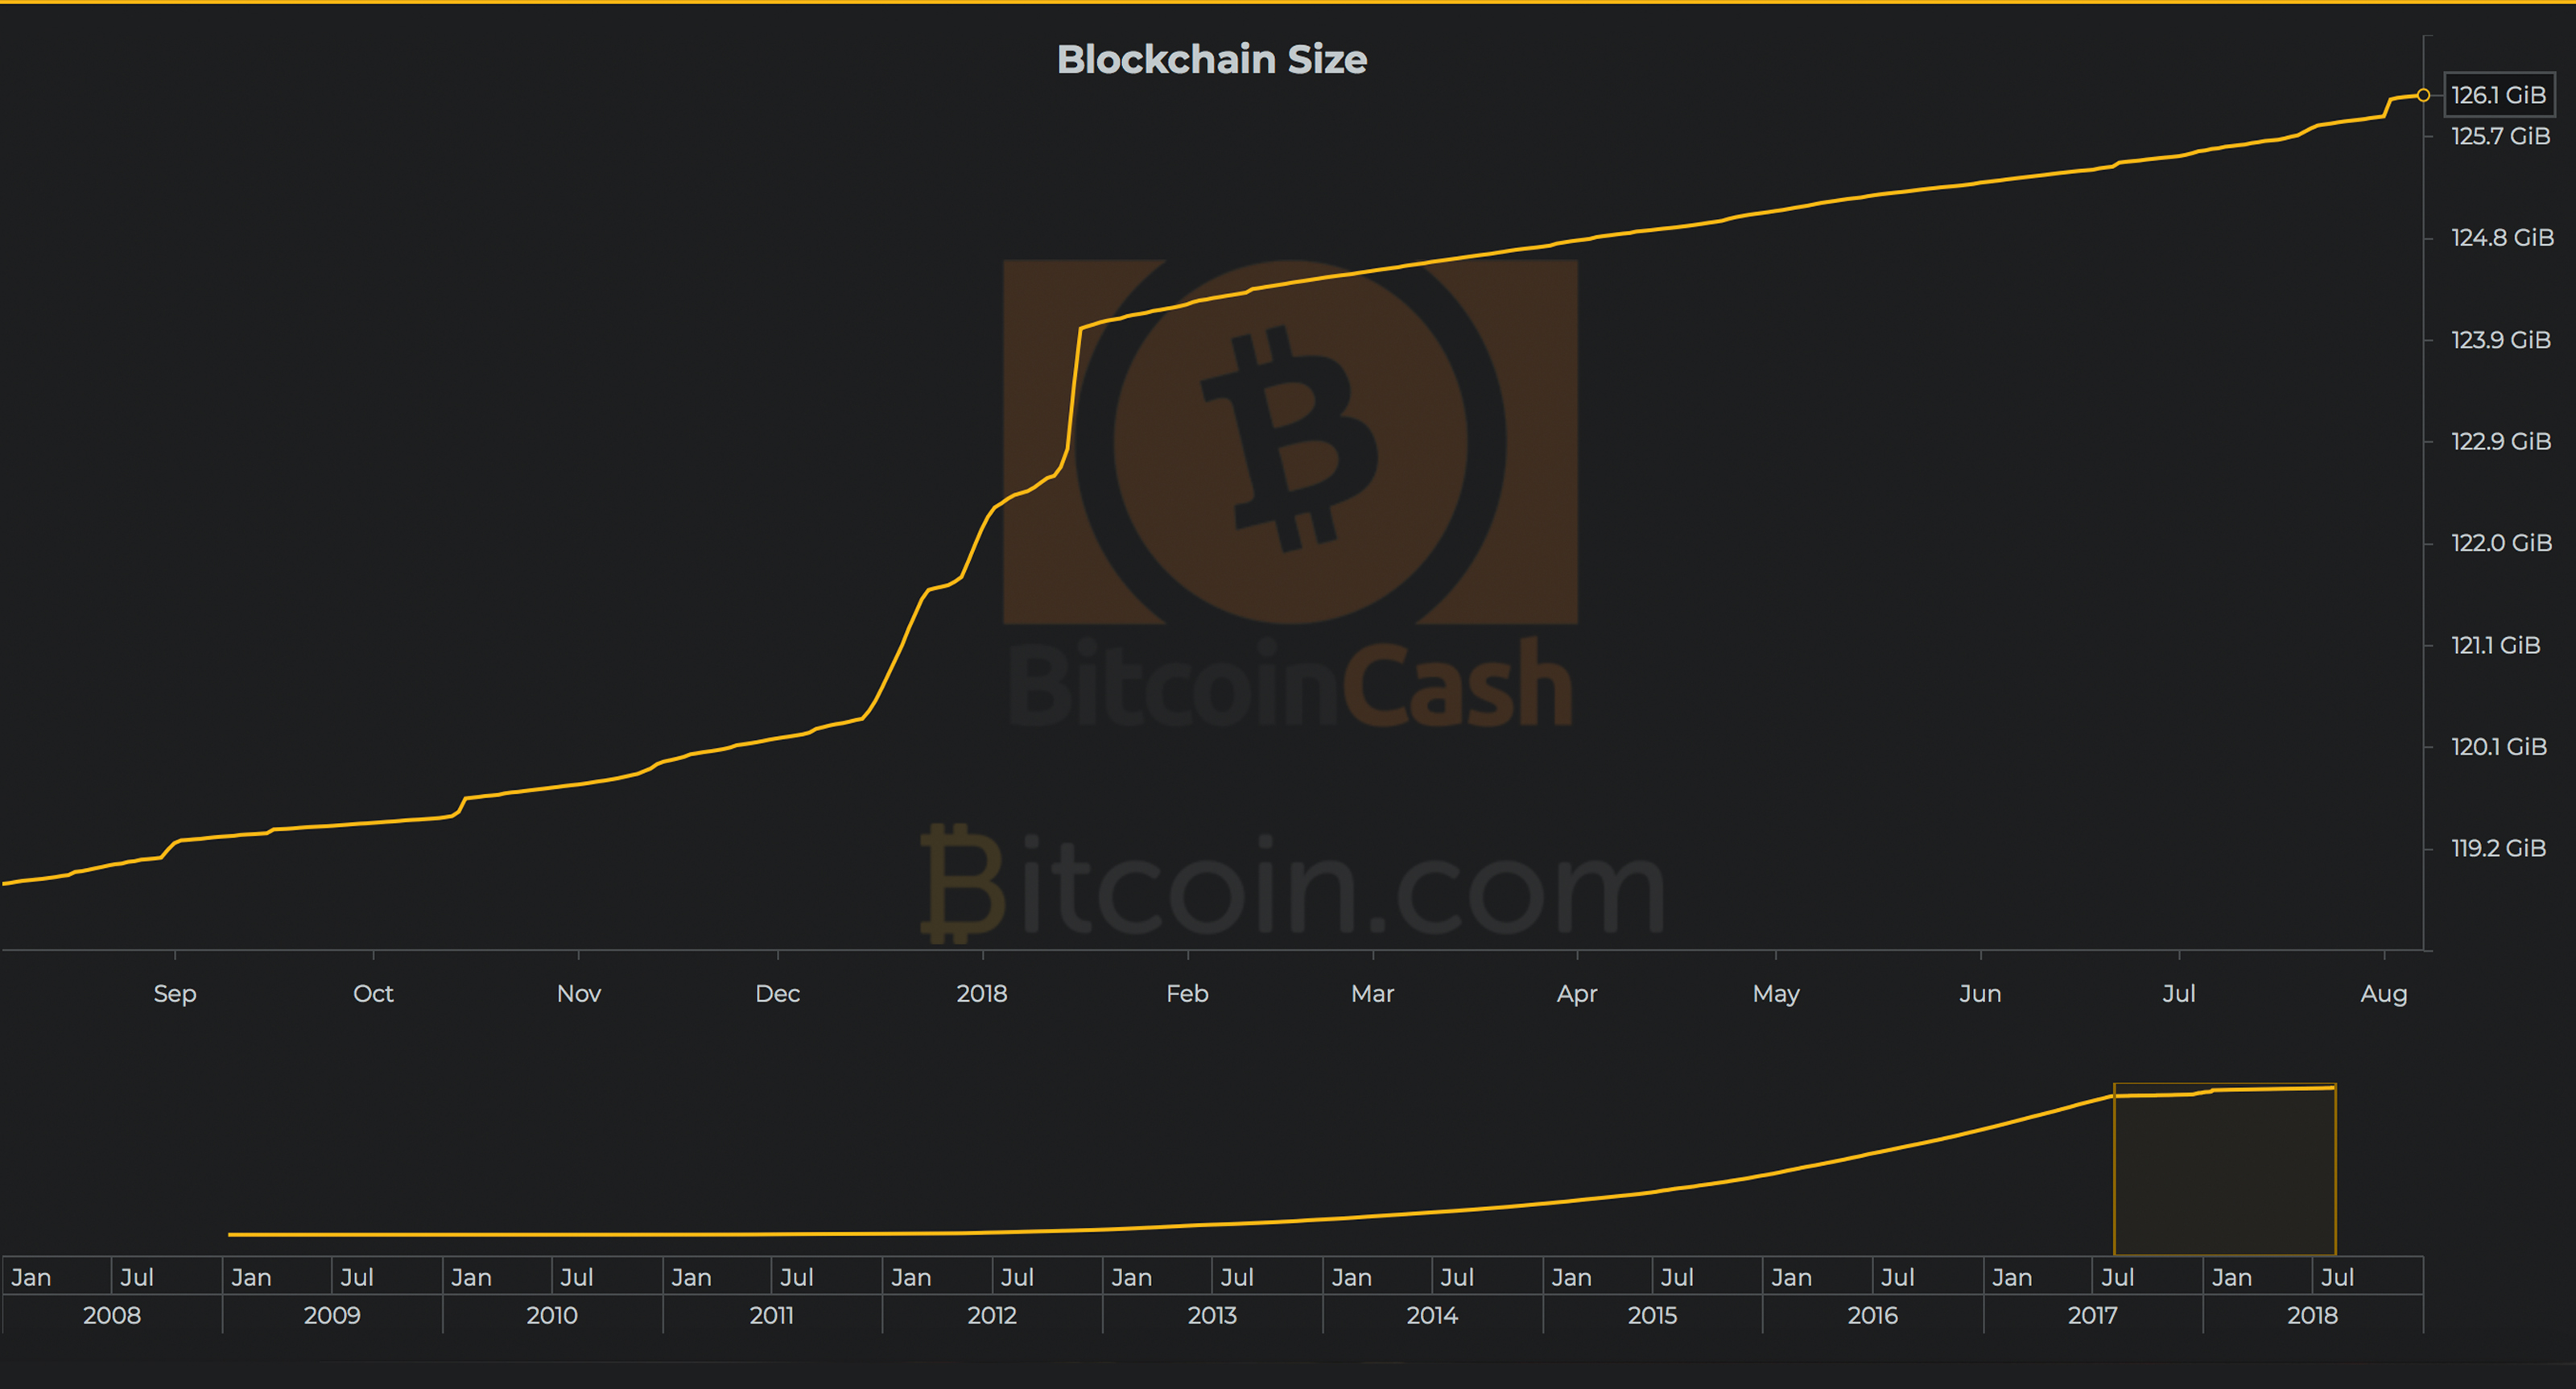 Introducing Bitcoin Cash Charts a Graphical Constellation of BCH Data